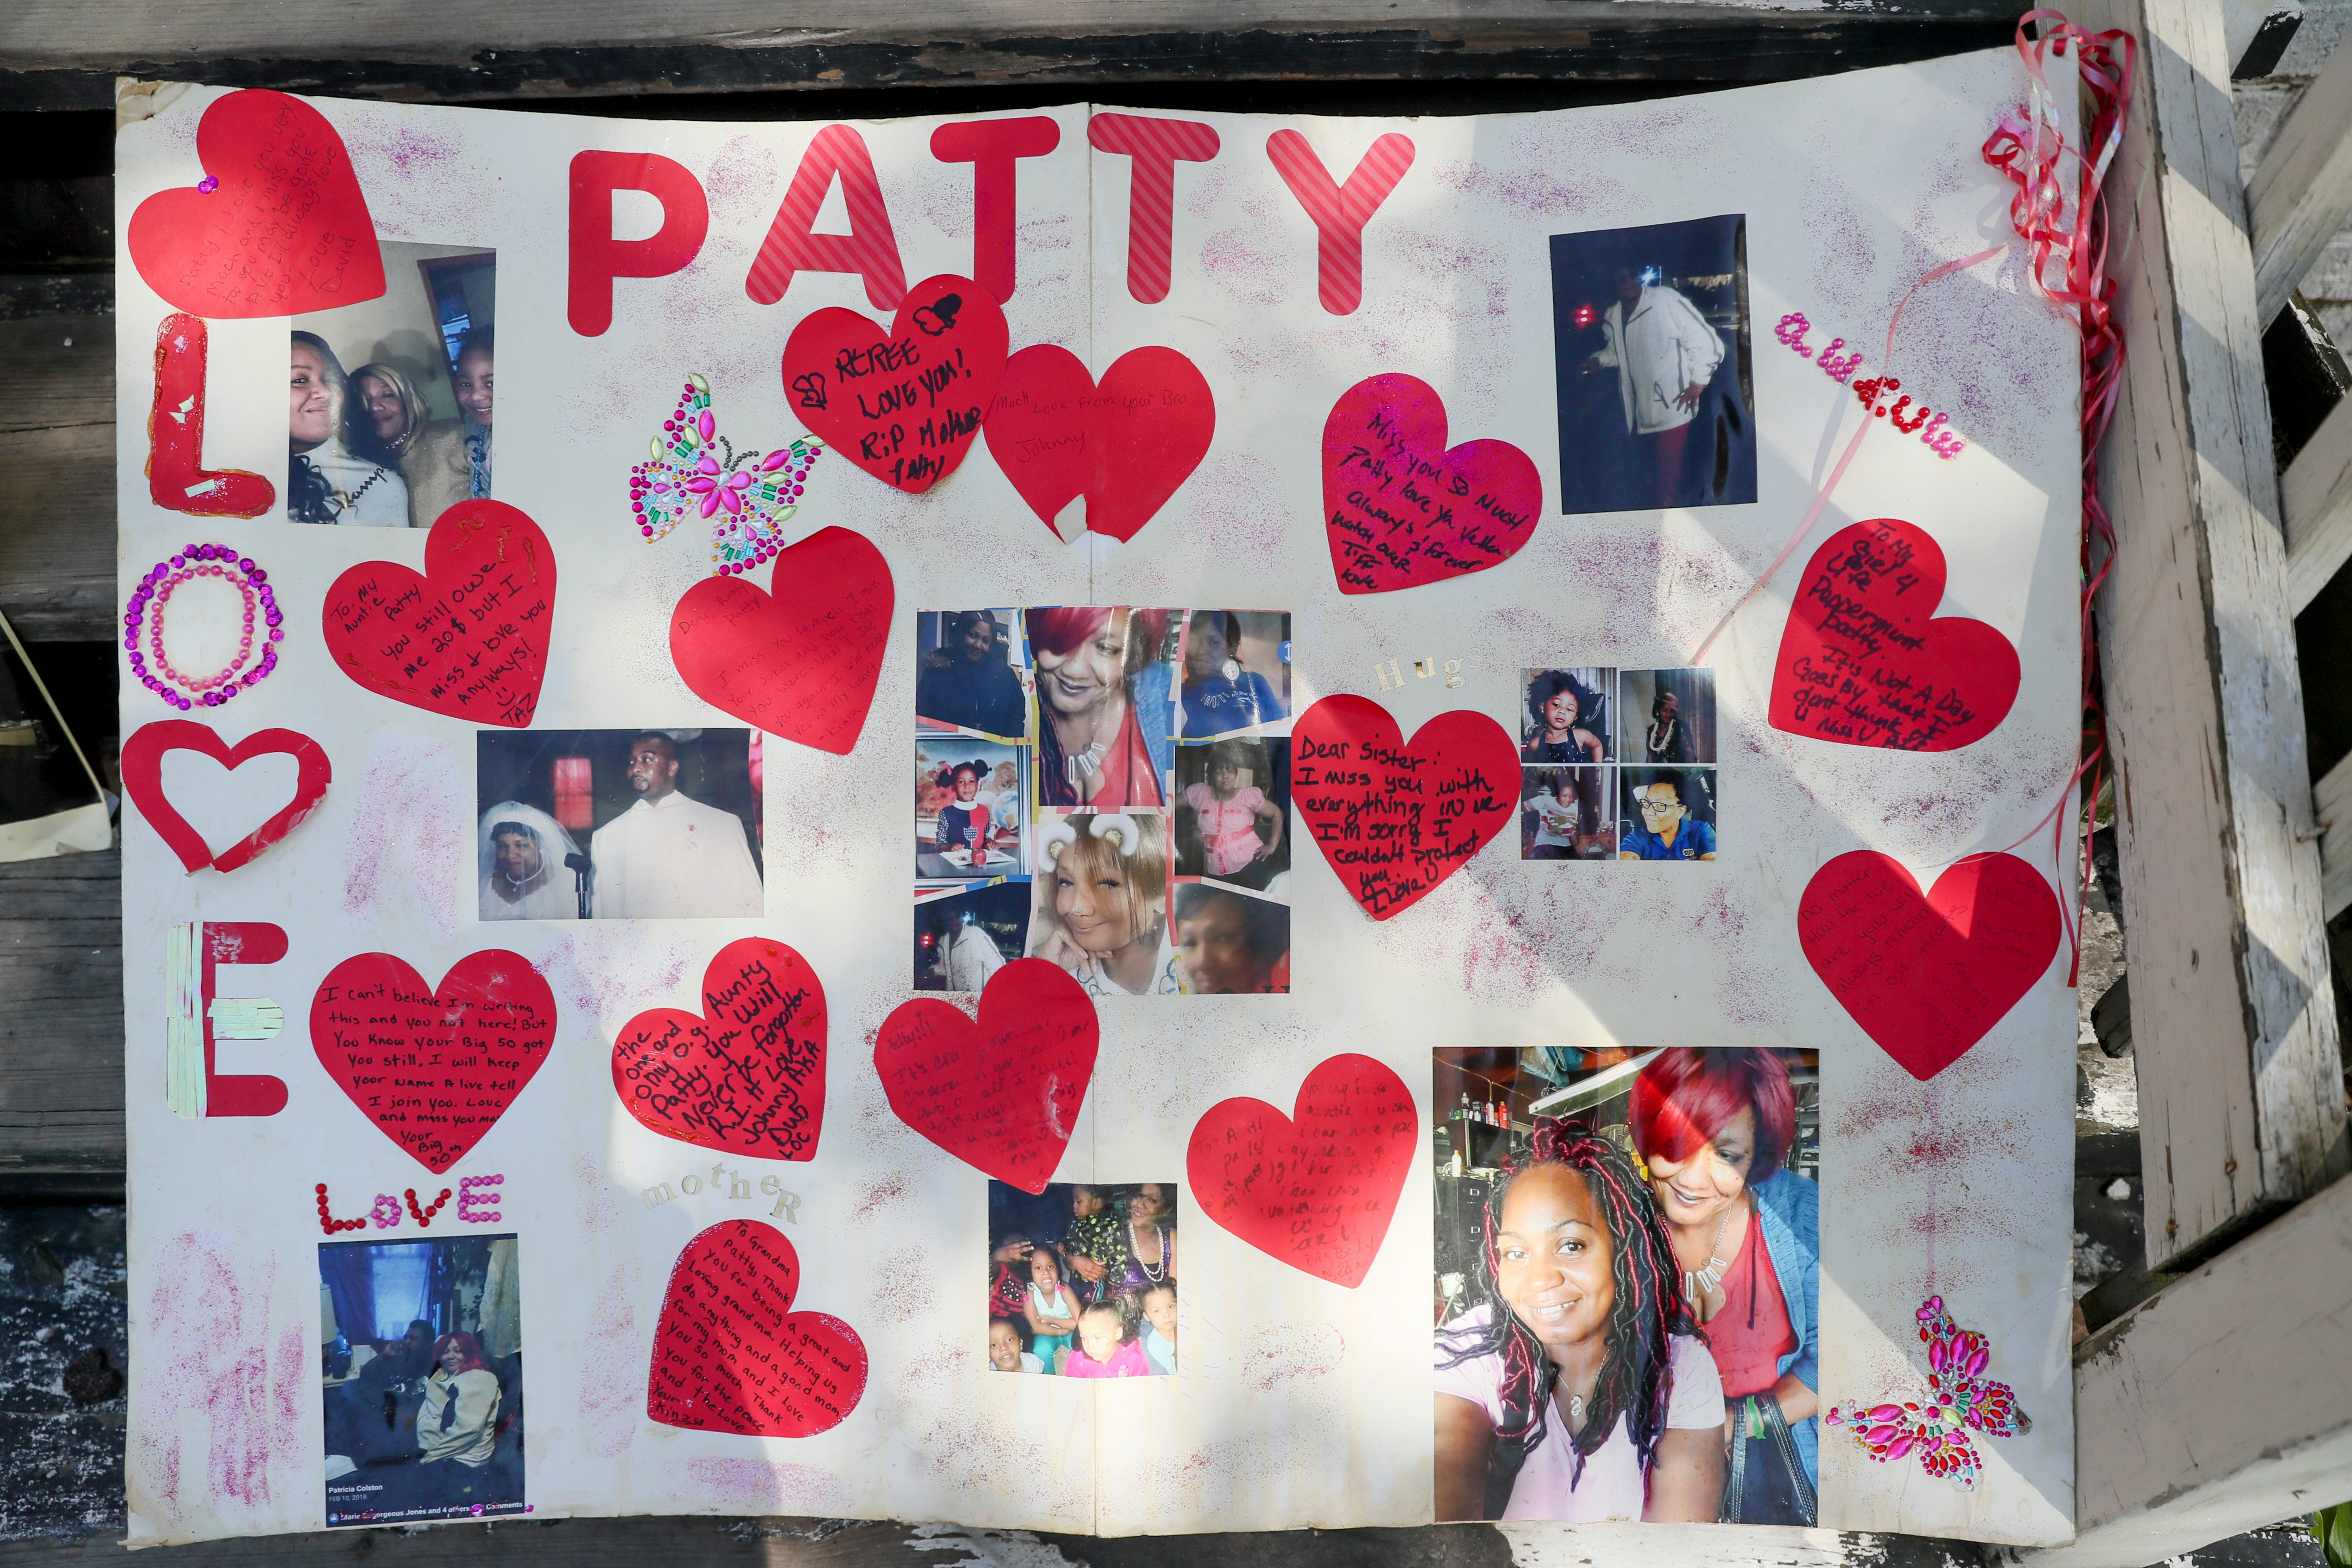 Tiffany McCarver put together poster boards as a way to grieve her mother's, Patricia Colston, death in a house fire.